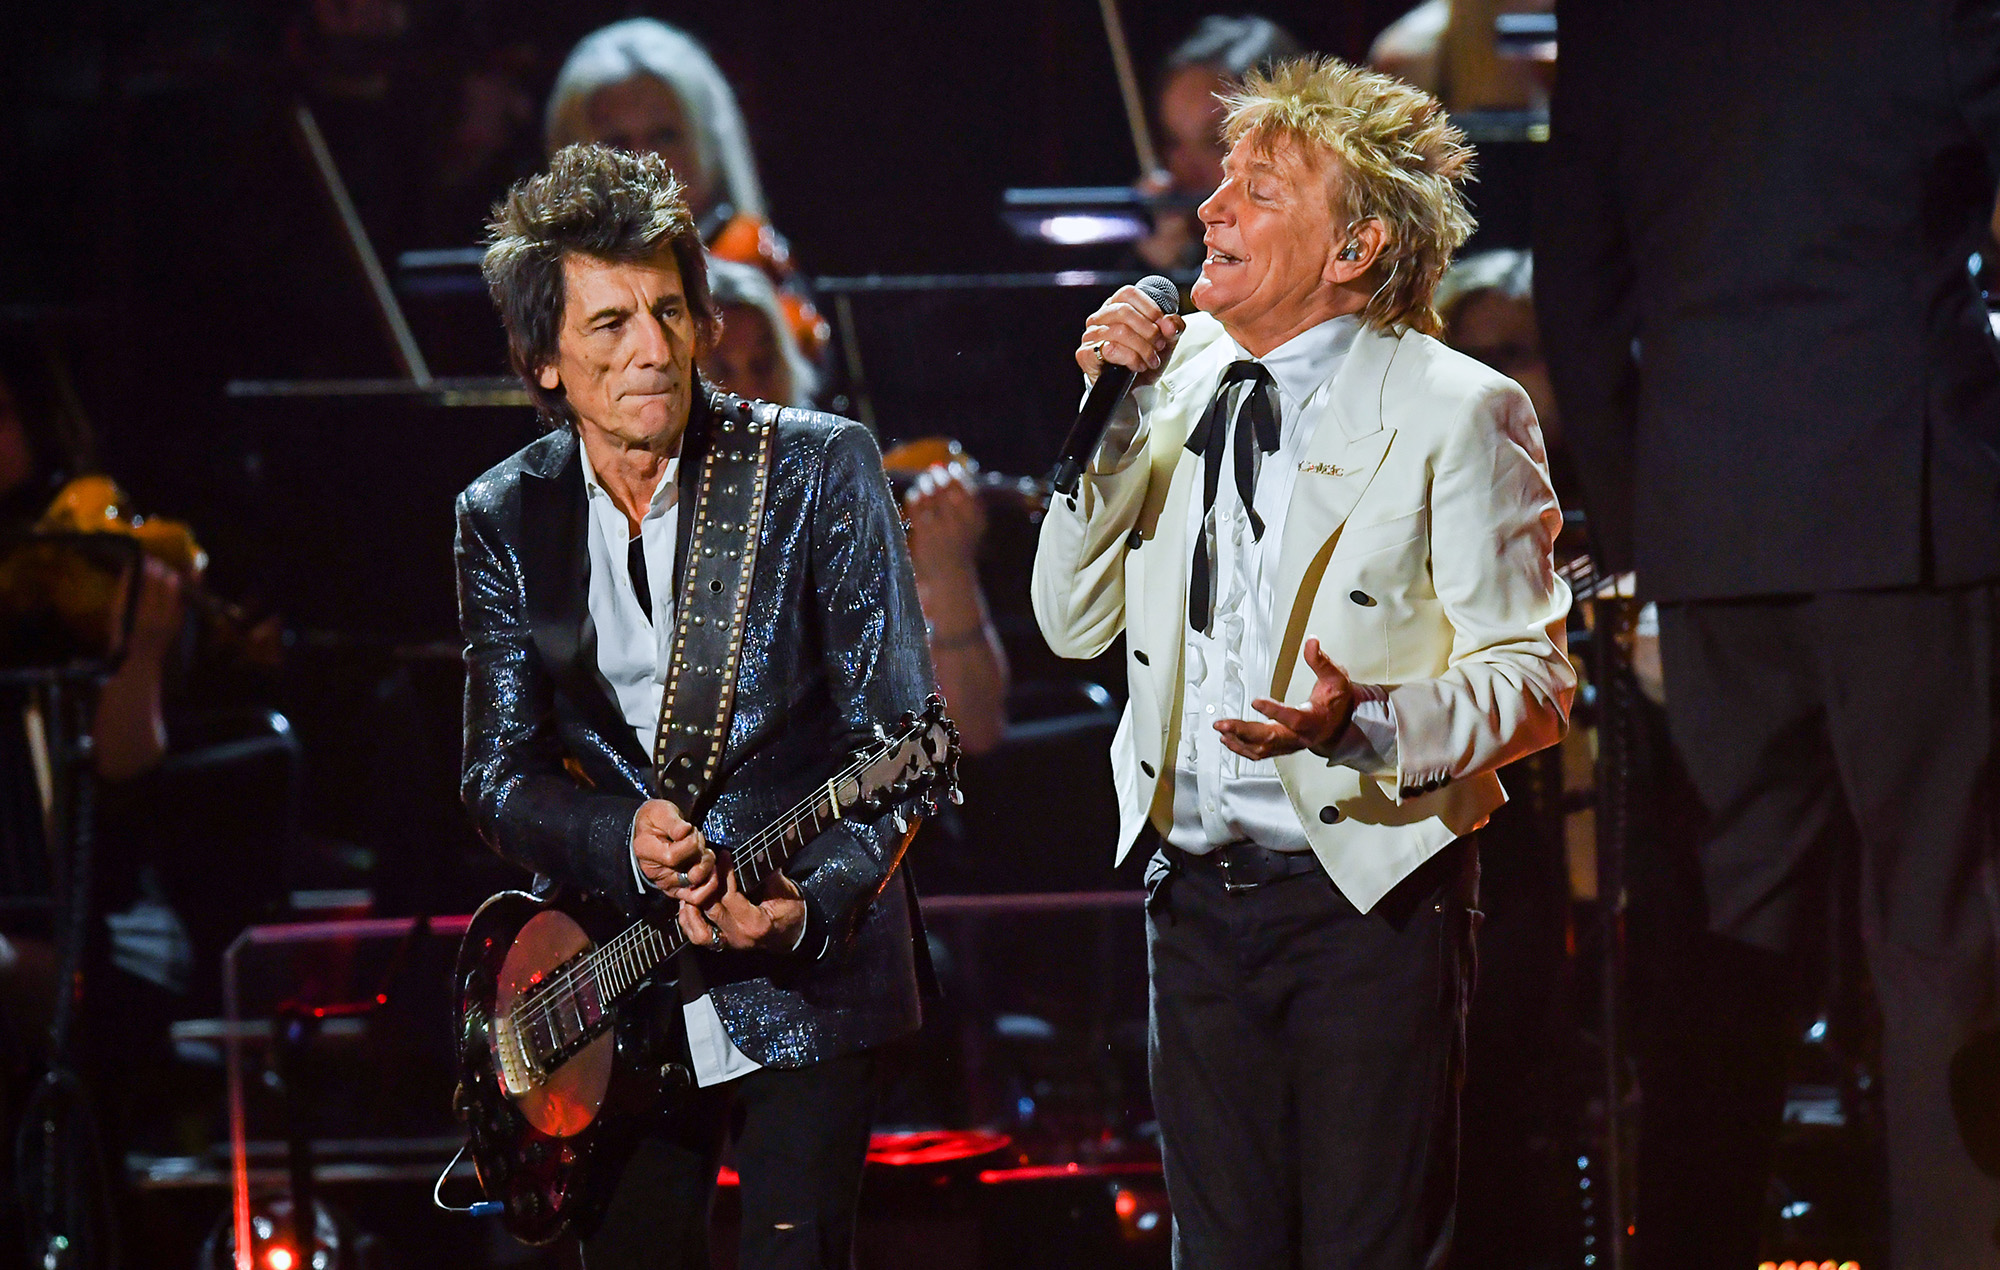 Ronnie Wood and Rod Stewart of The Faces.